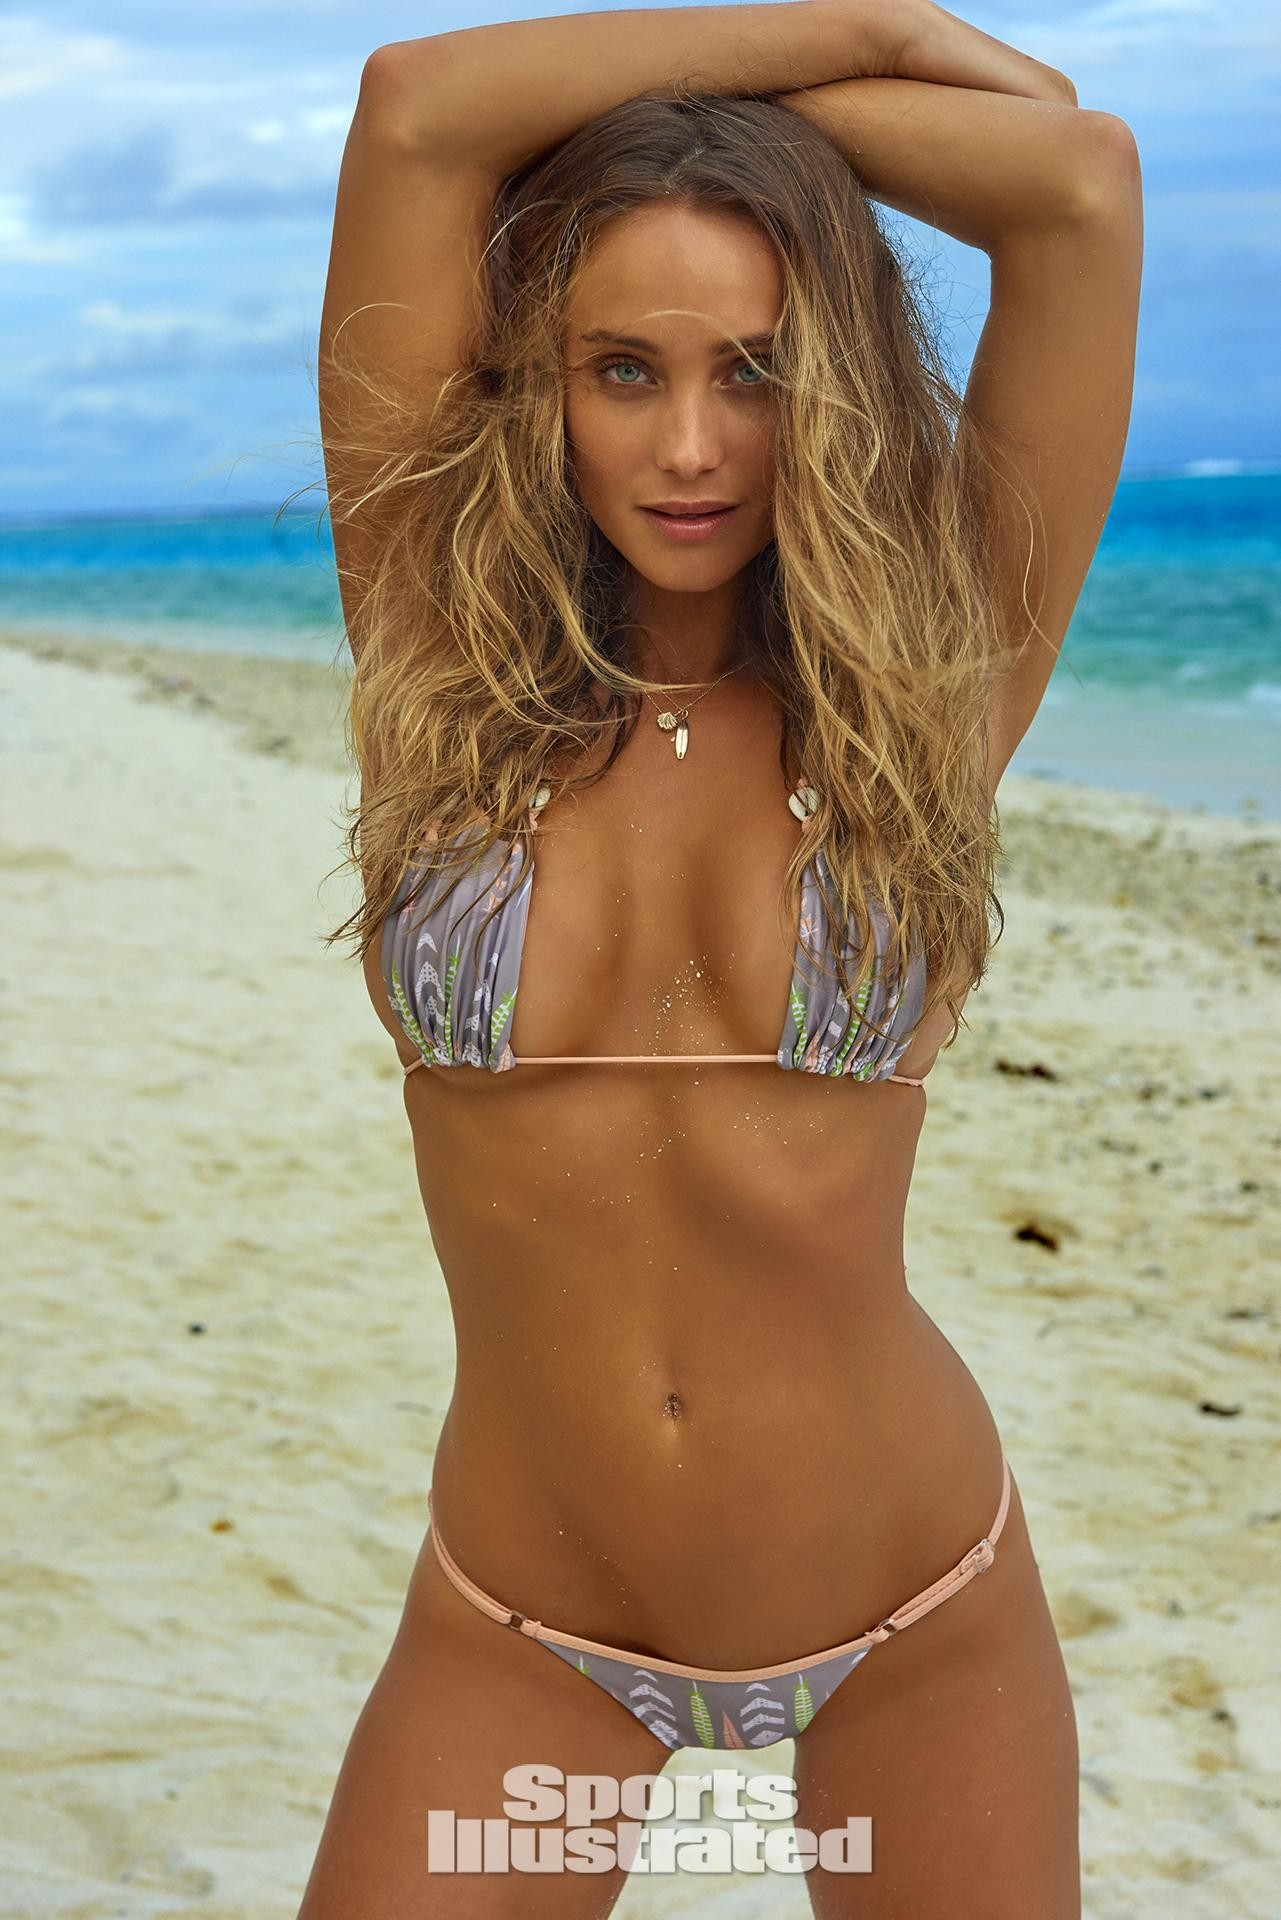 Nude Sports Illustrated